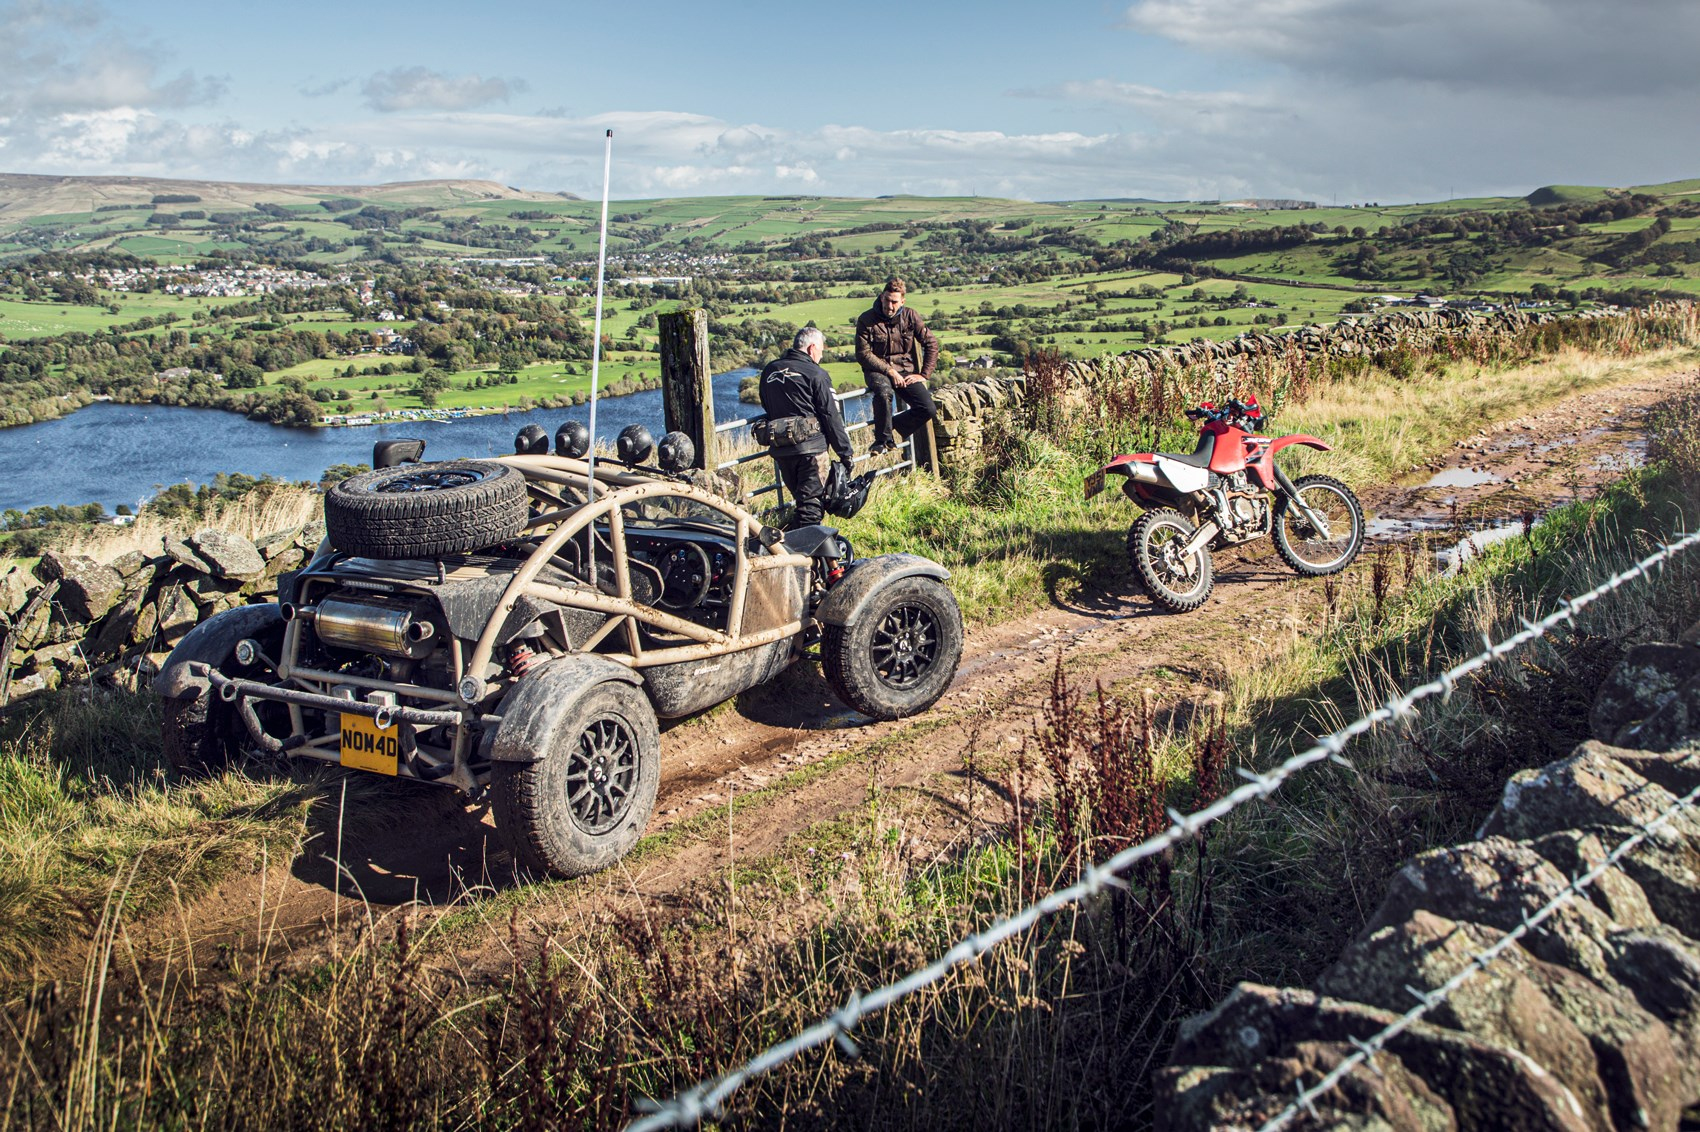 Ariel Nomad long-termer: an off-road adventure